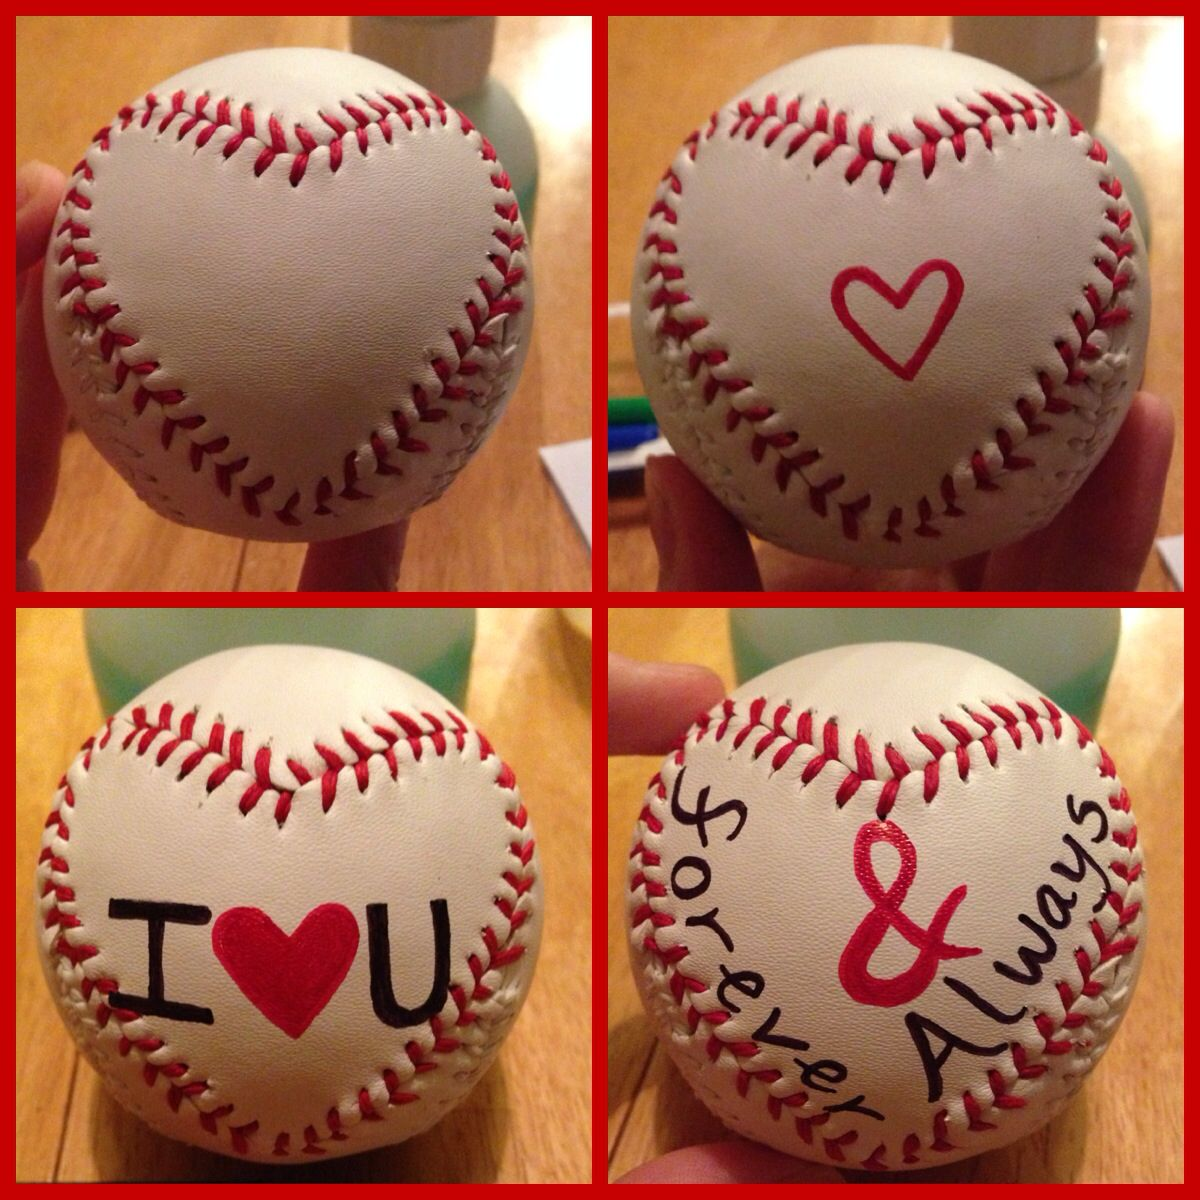 diy valentine 39 s day present for my baseball playing boyfriend ball from hallmark valentines. Black Bedroom Furniture Sets. Home Design Ideas